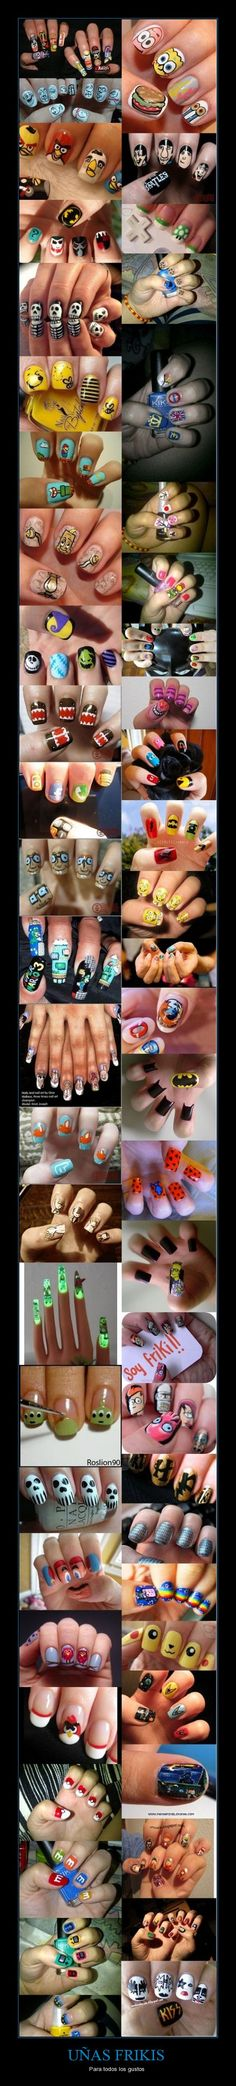 No idea wat this says but I wish I could do nails like this